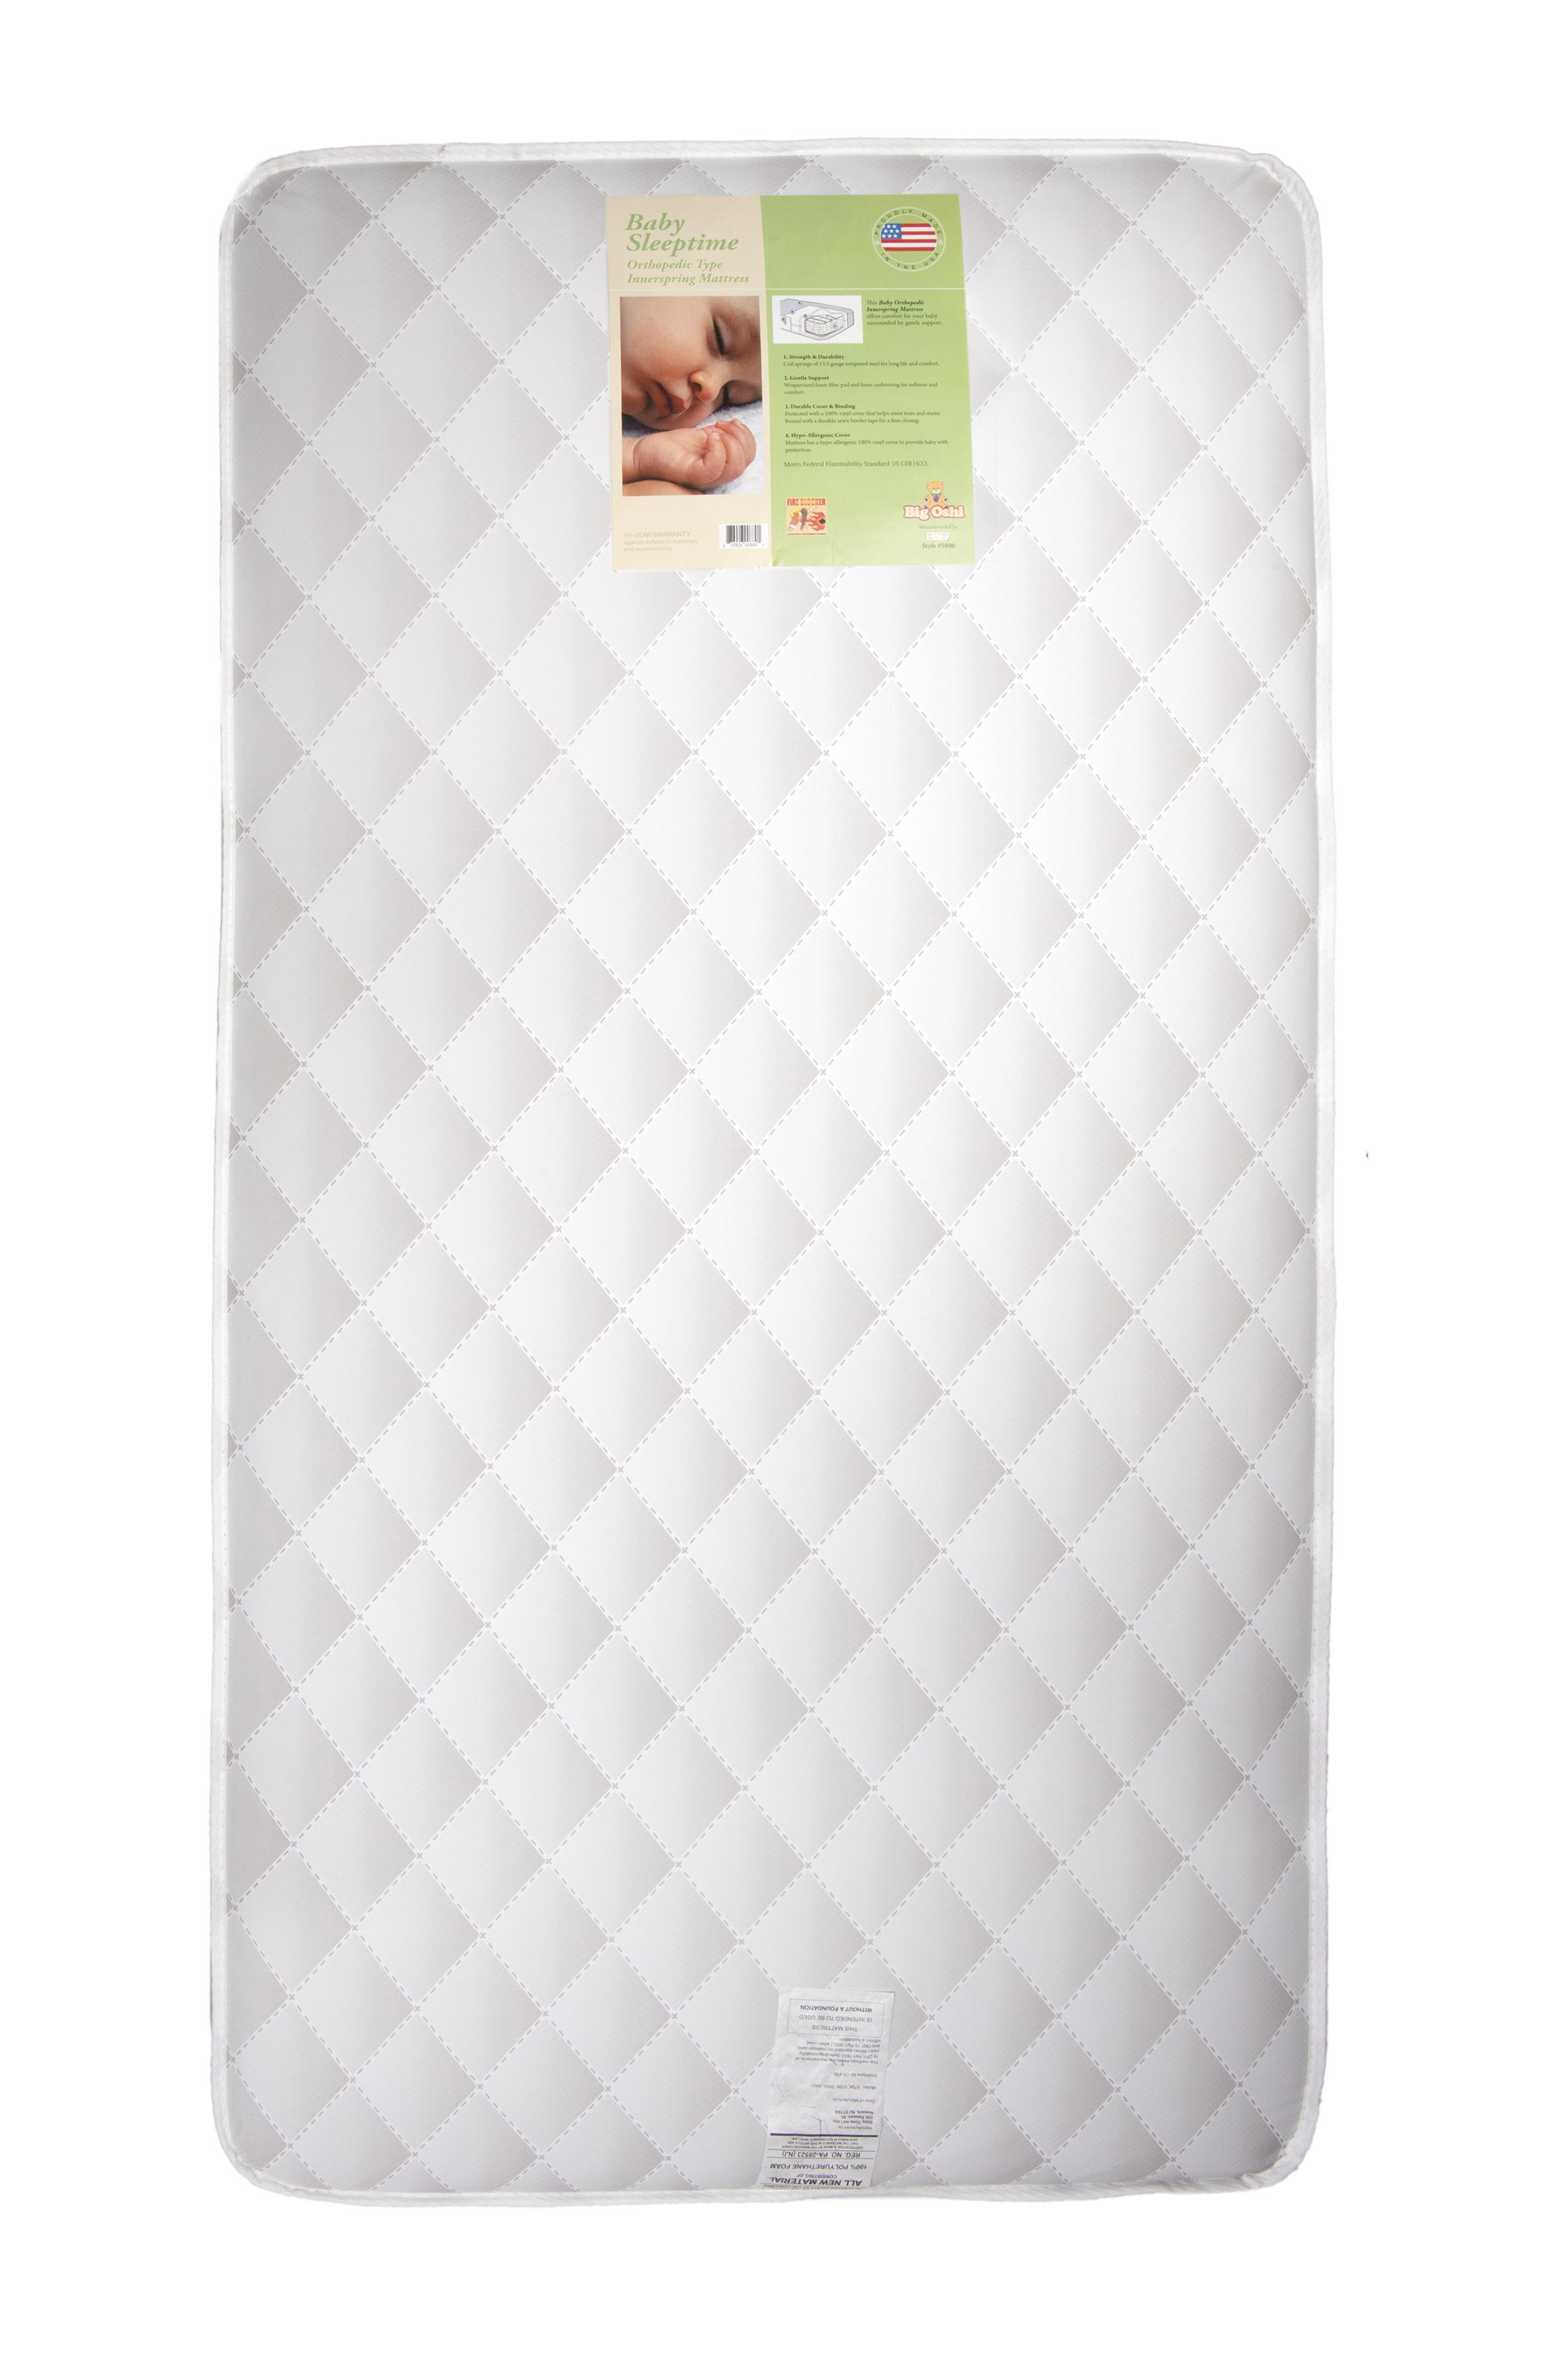 """Big Oshi Full Size Baby Crib Mattress 5.8"""" Thick Orthopedic Innerspring Mattress 96 Coil Springs With... by Big Oshi"""